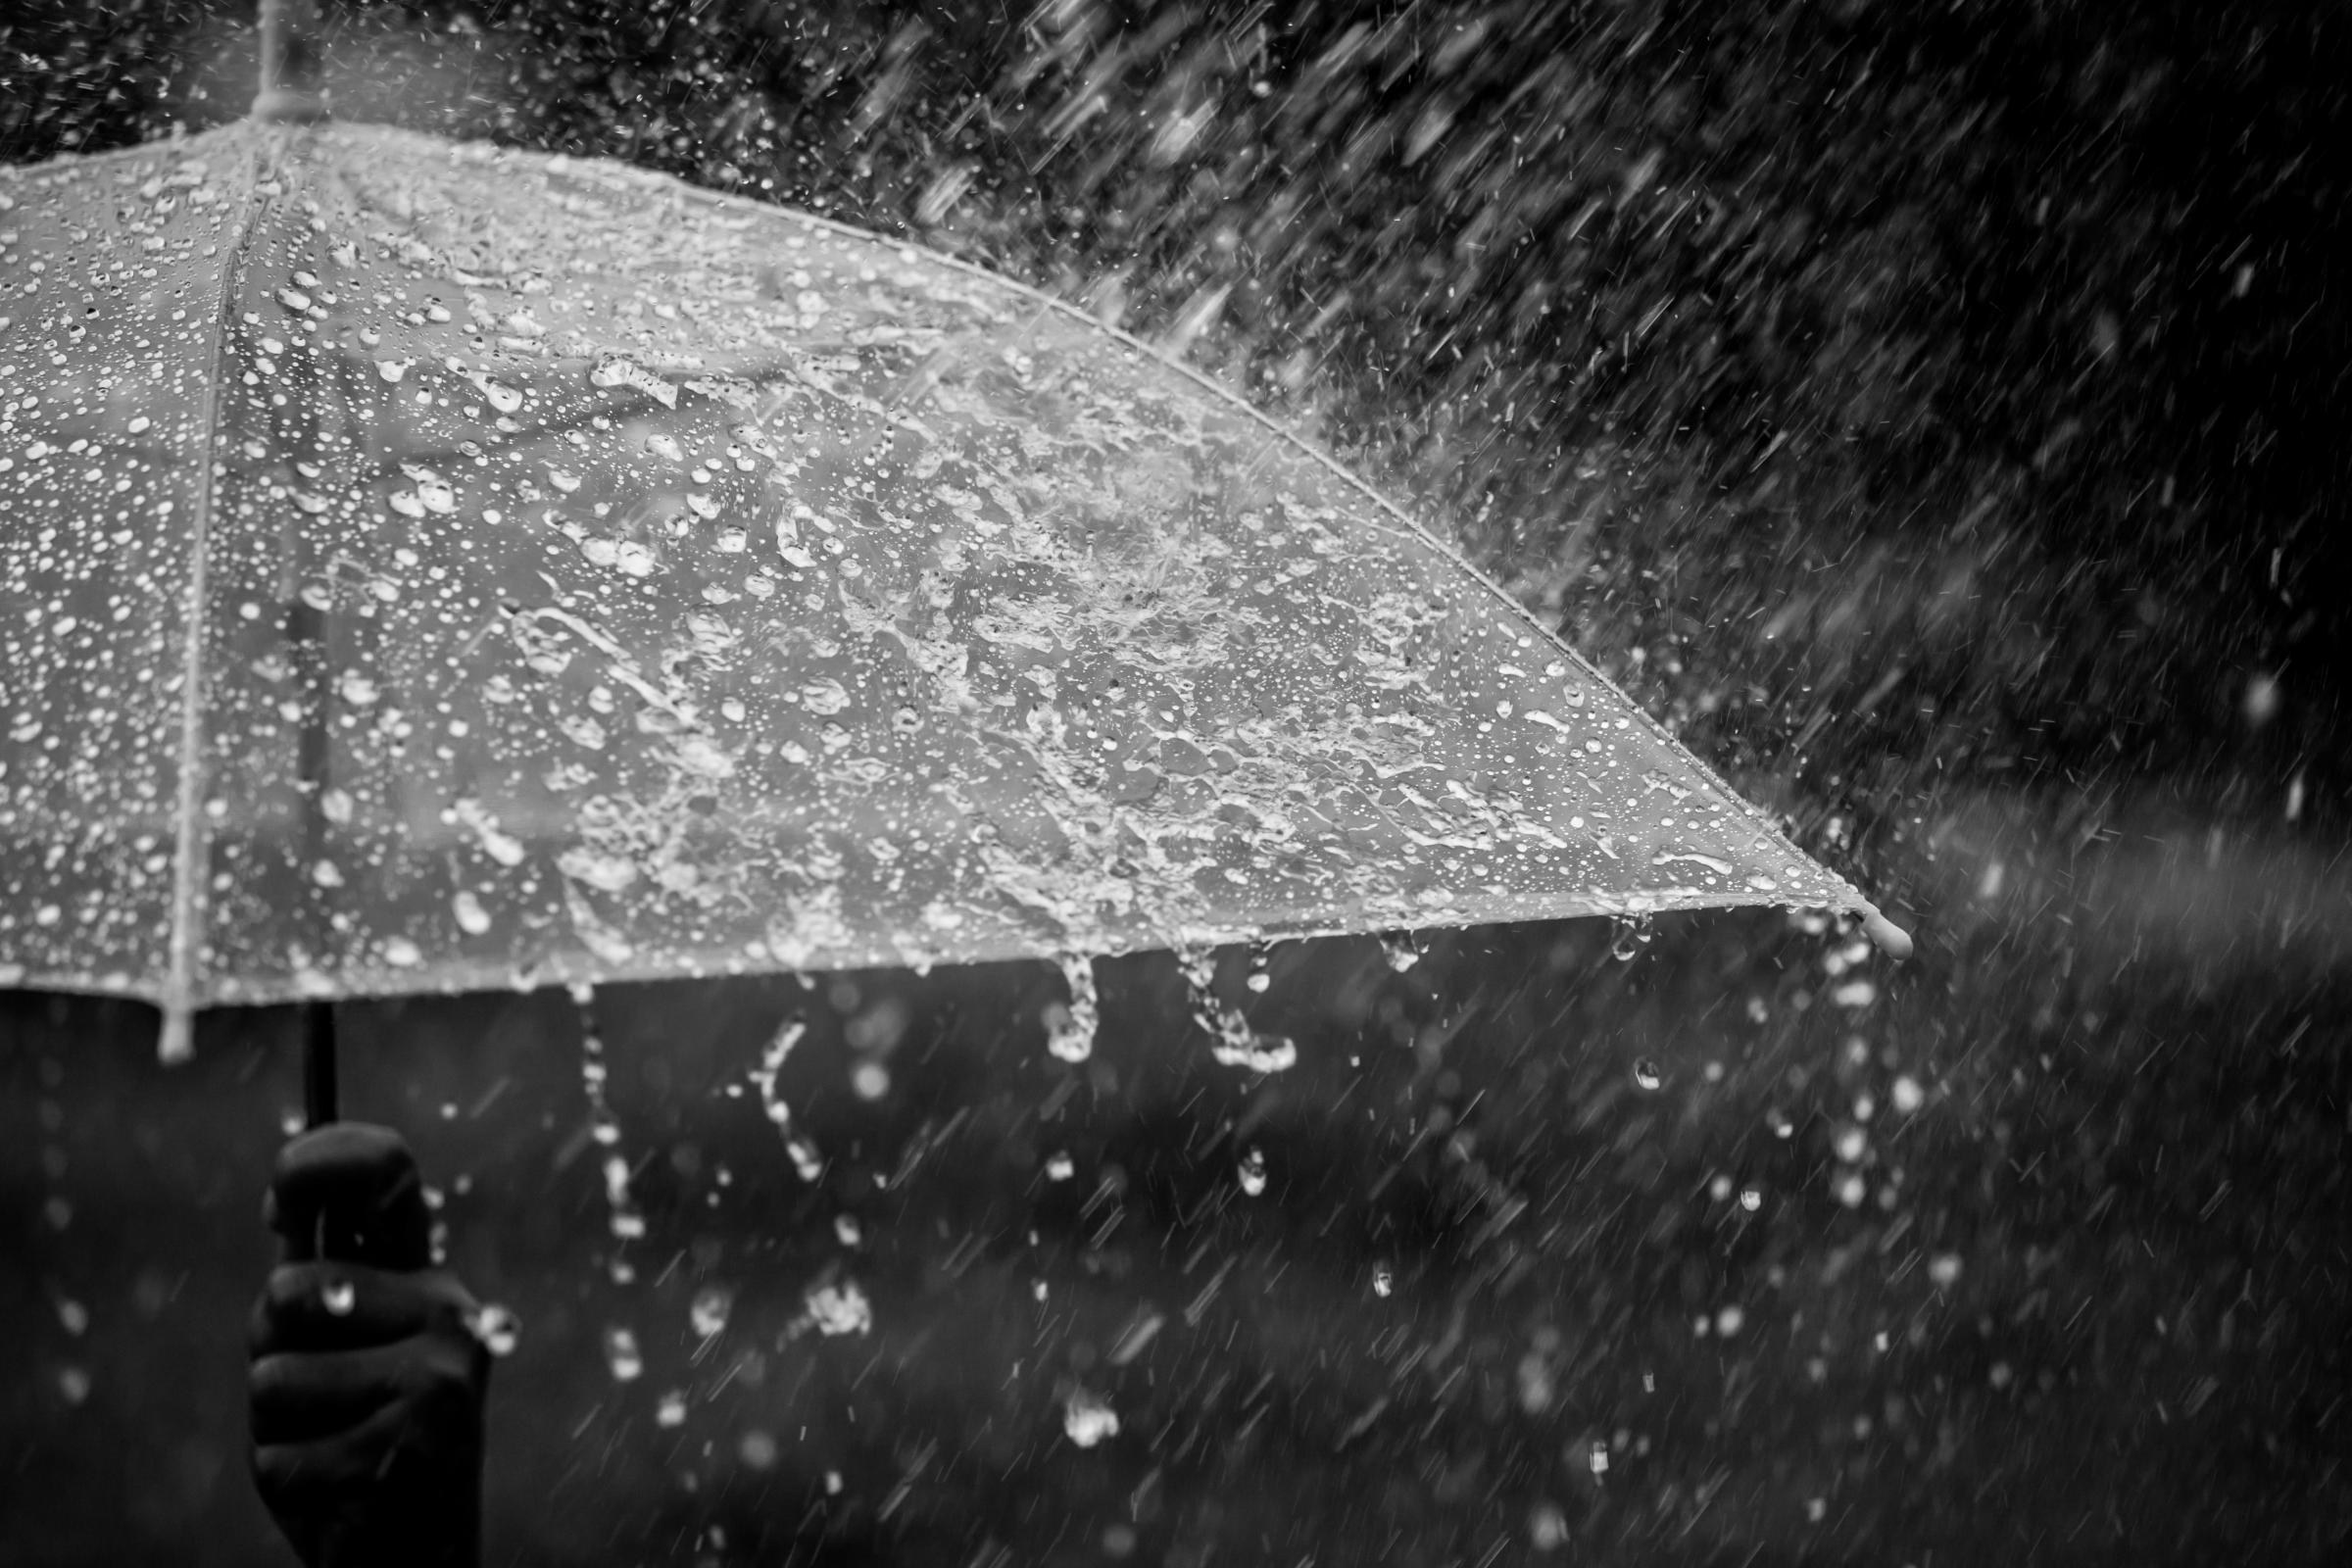 Splashing water on umbrella in the rain in black and white color tone.